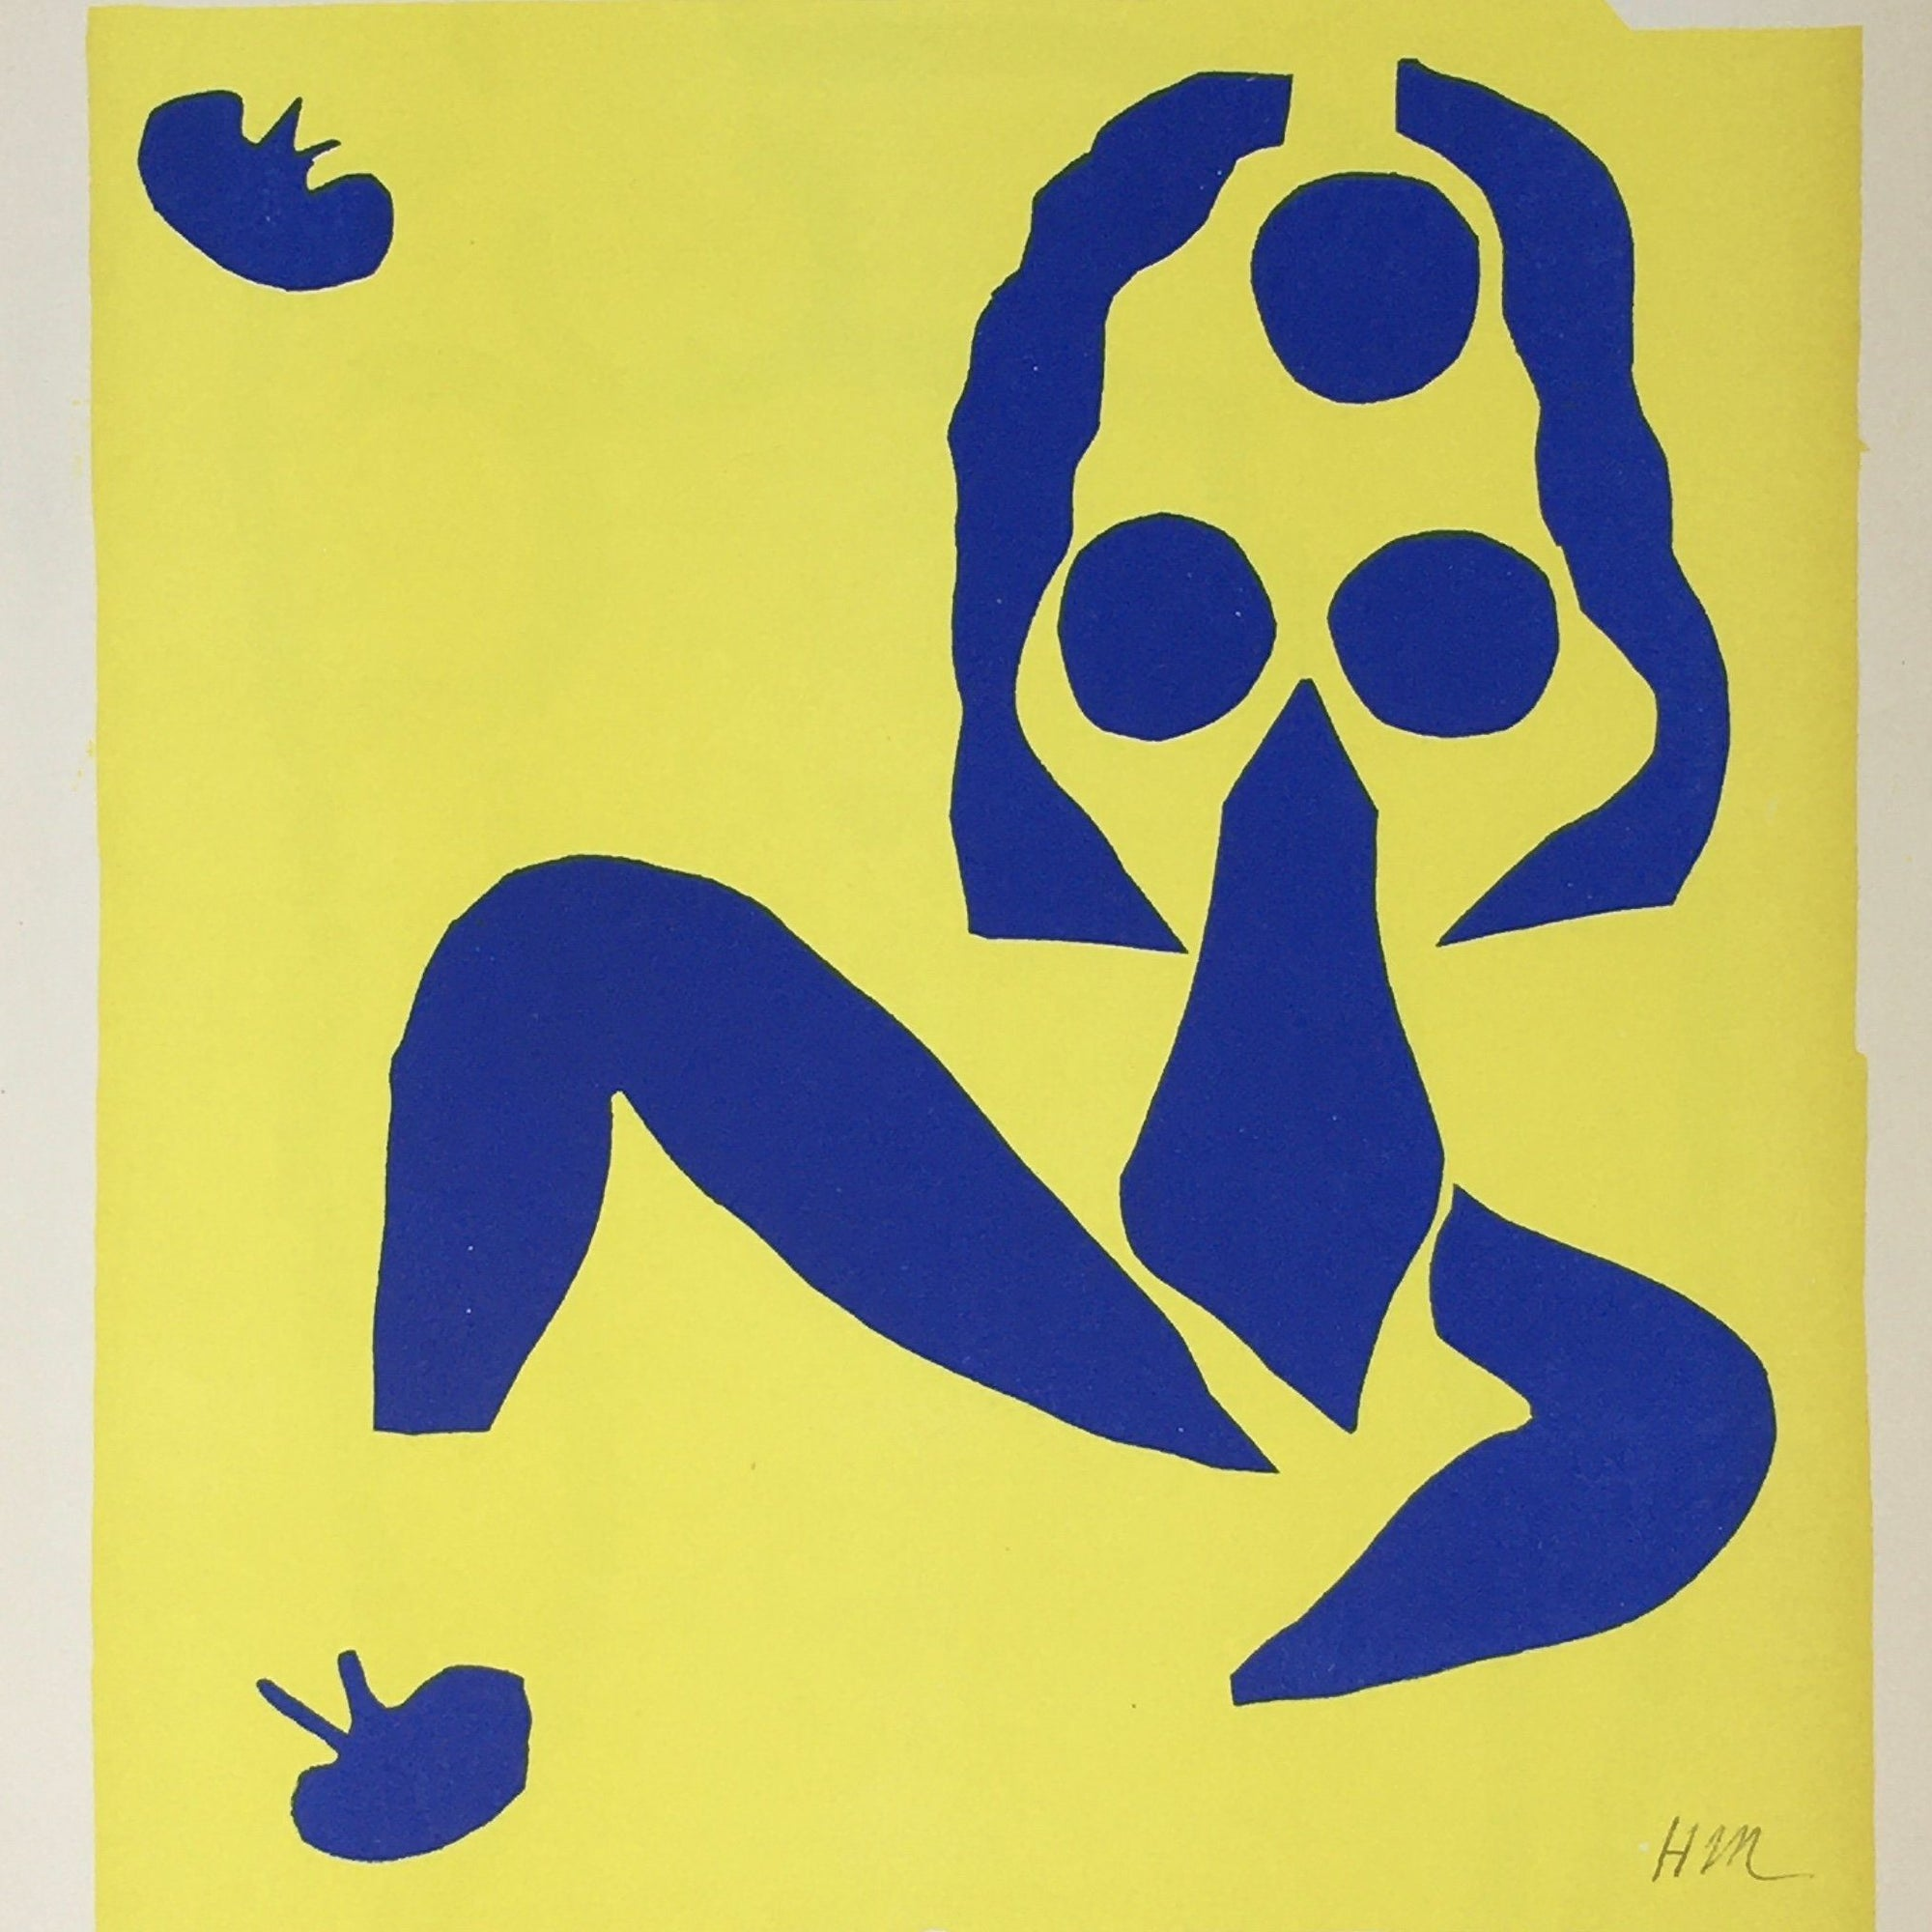 Henri Matisse - Nu Bleu on Yellow - Barnbury